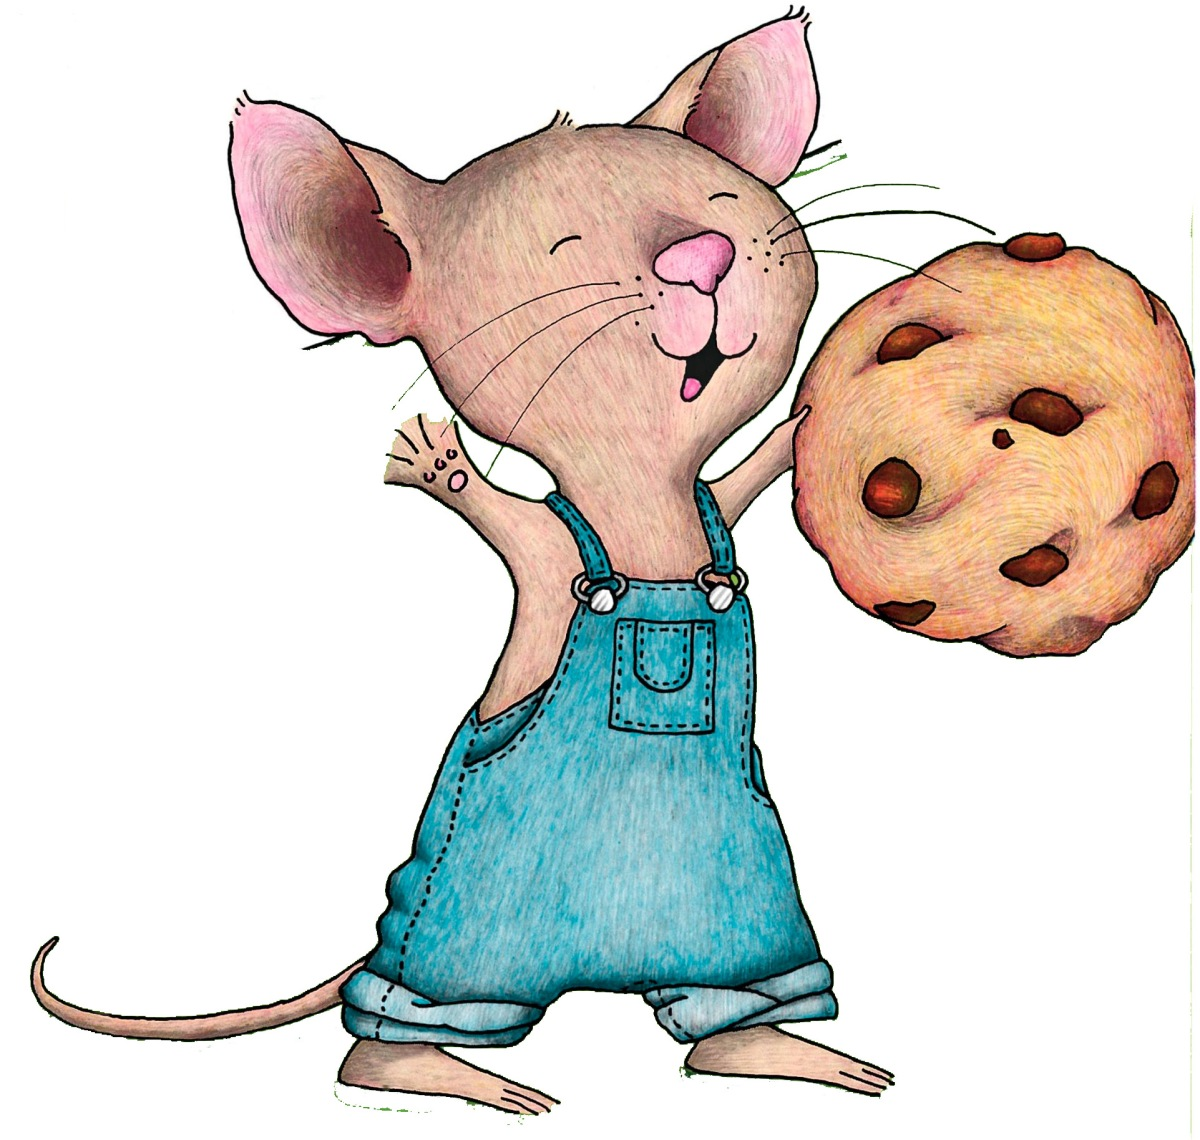 If You Give a Mouse a Cookie - A Cautionary Husband's Tale